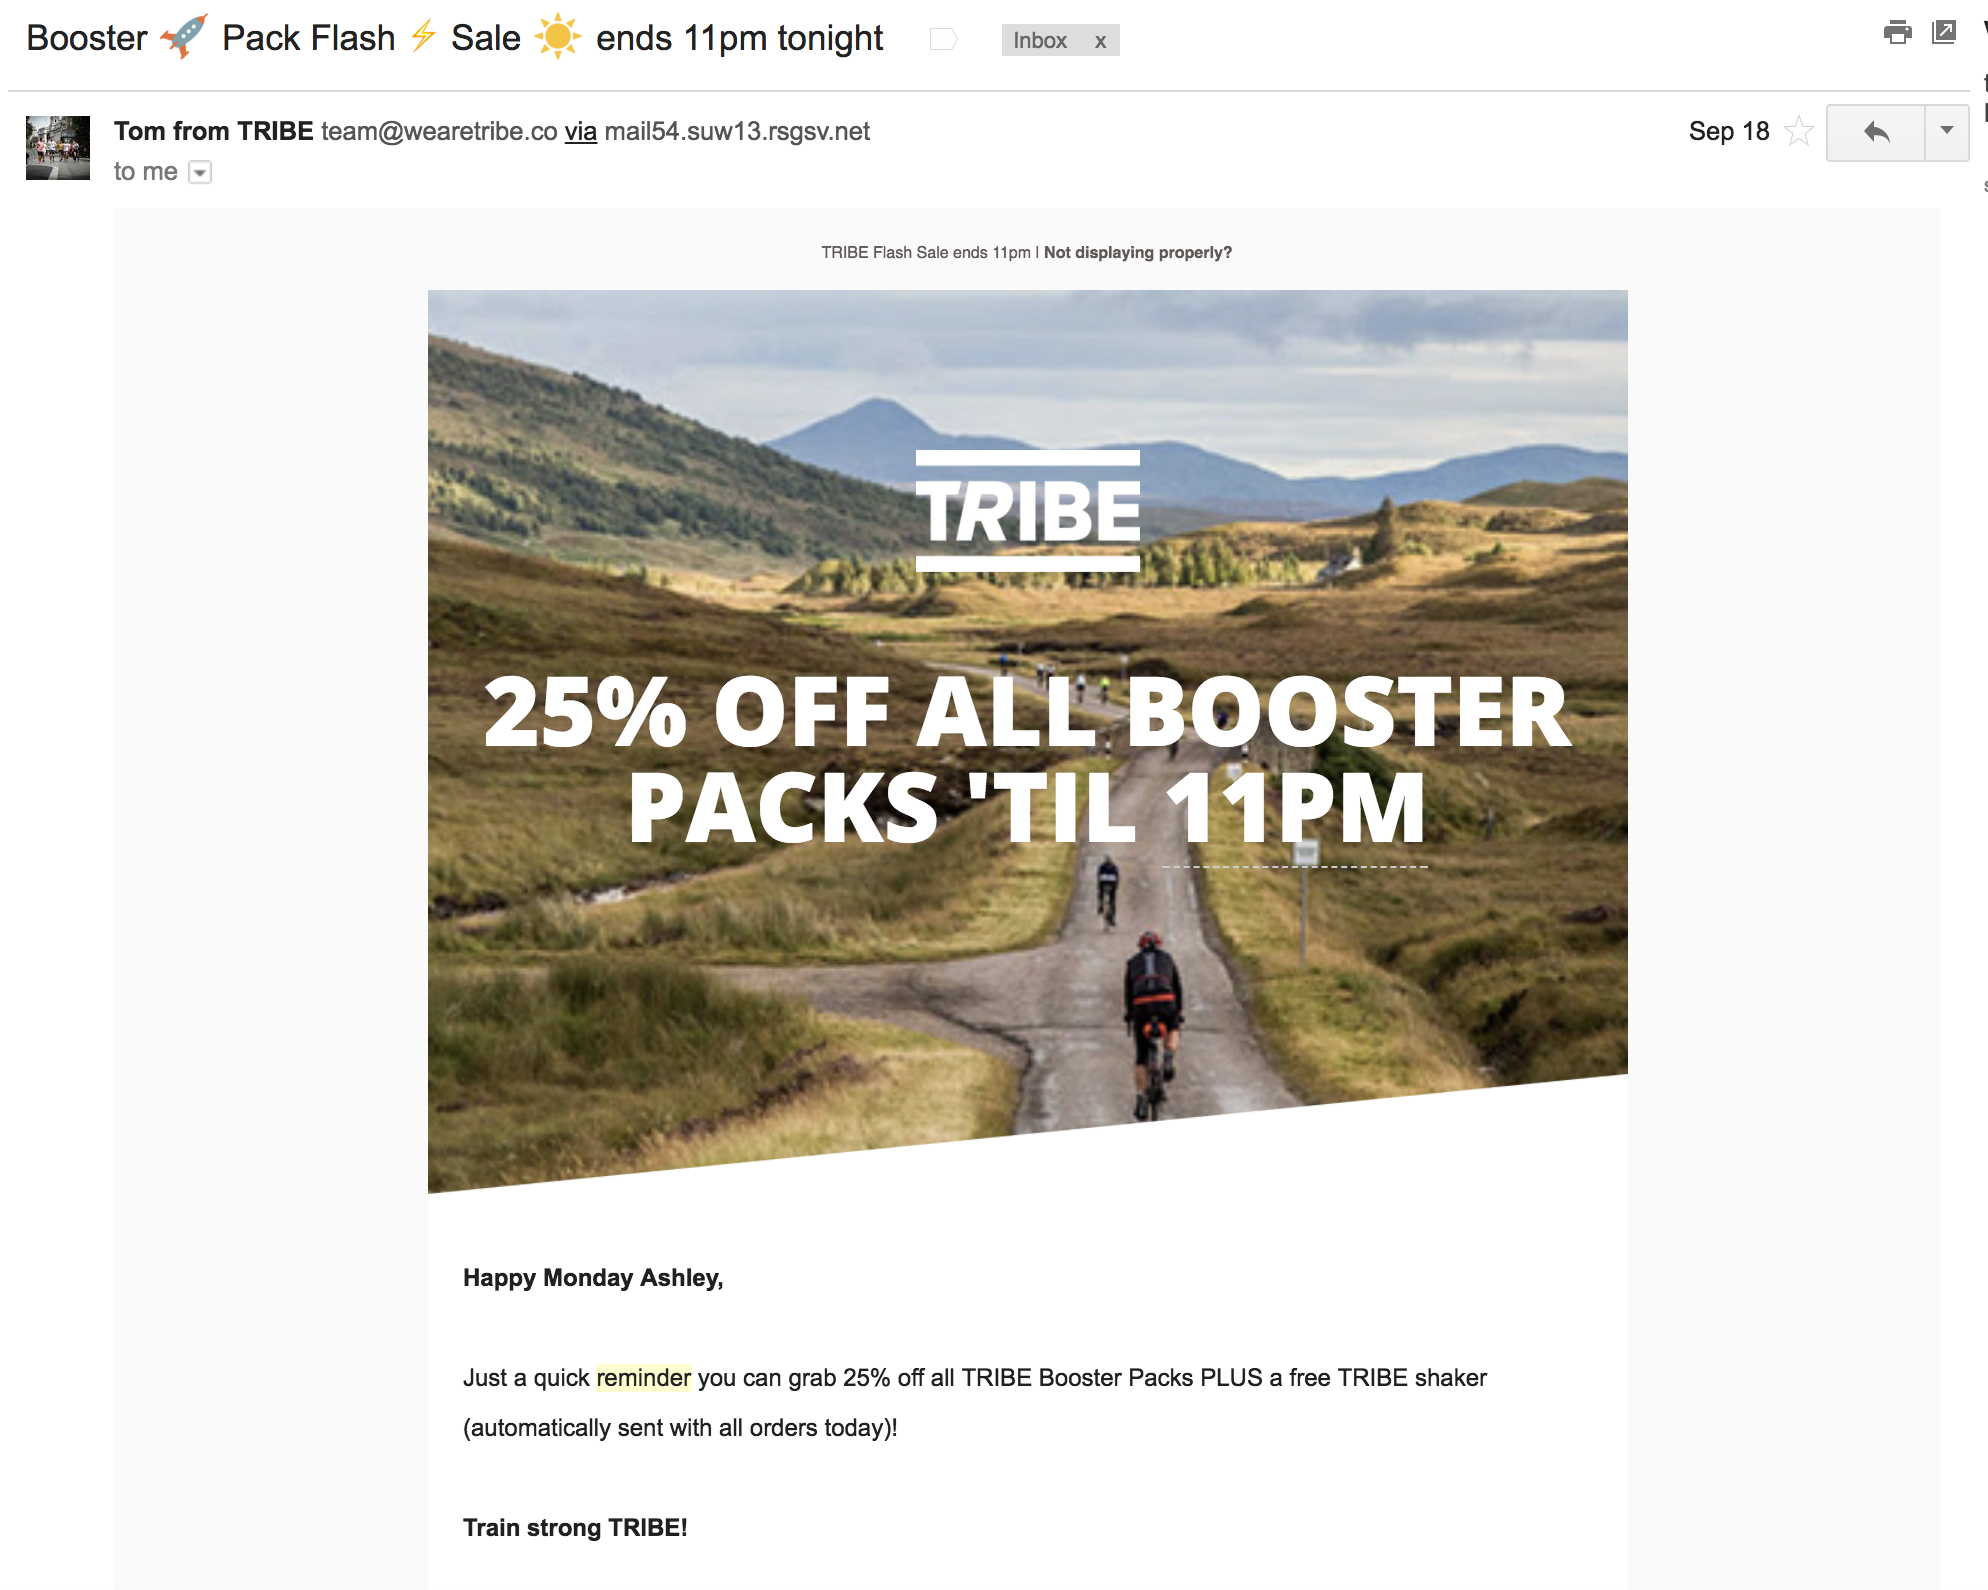 Screenshot showing an email by TRIBE